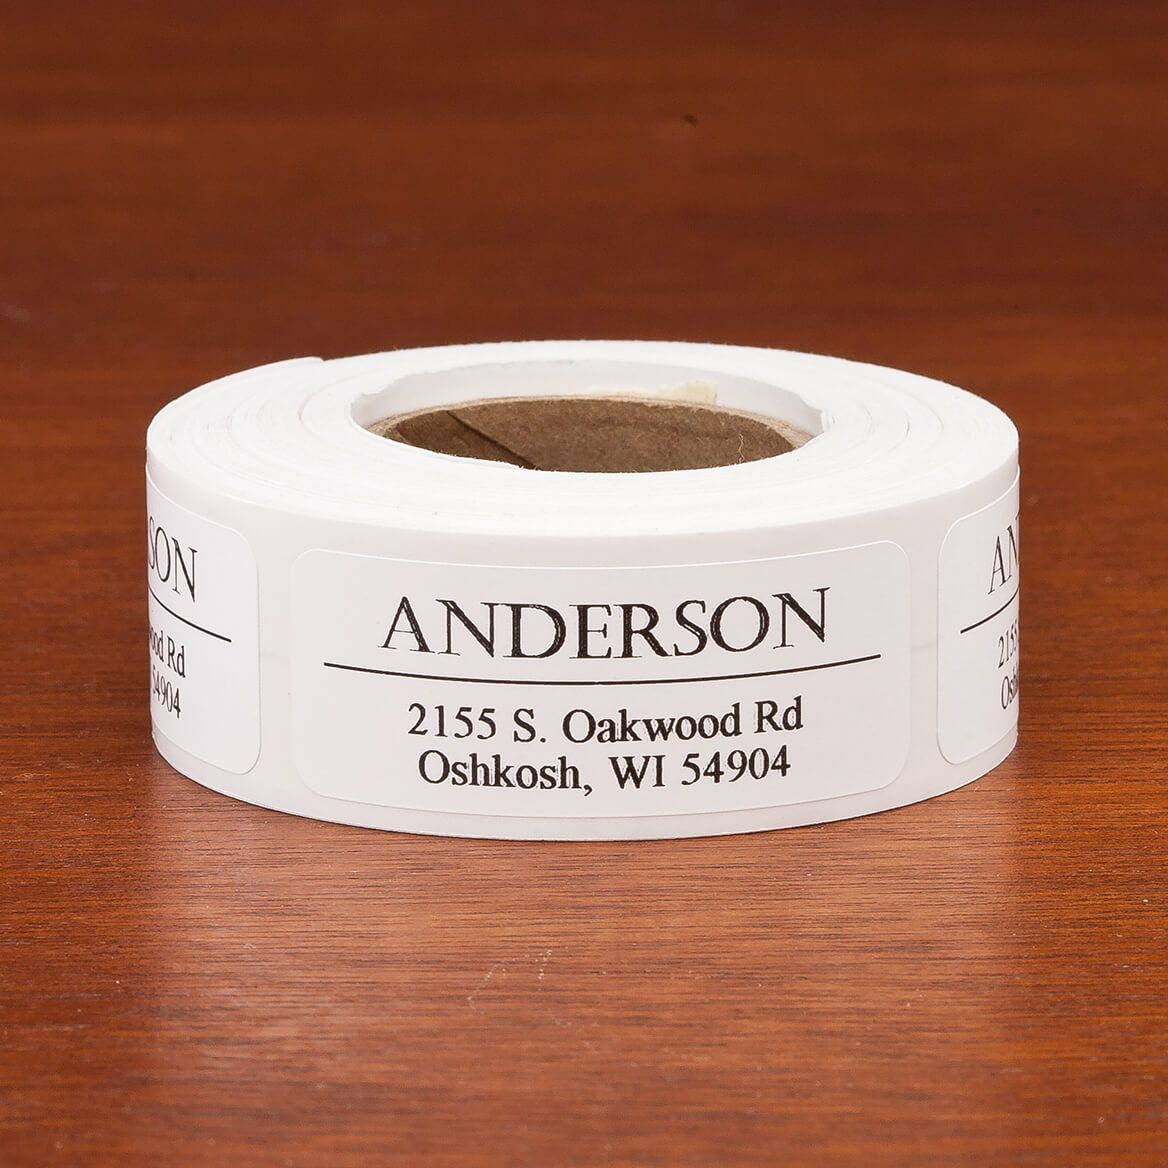 Personalized Bold and Centered Address Labels, Set of 200-357463